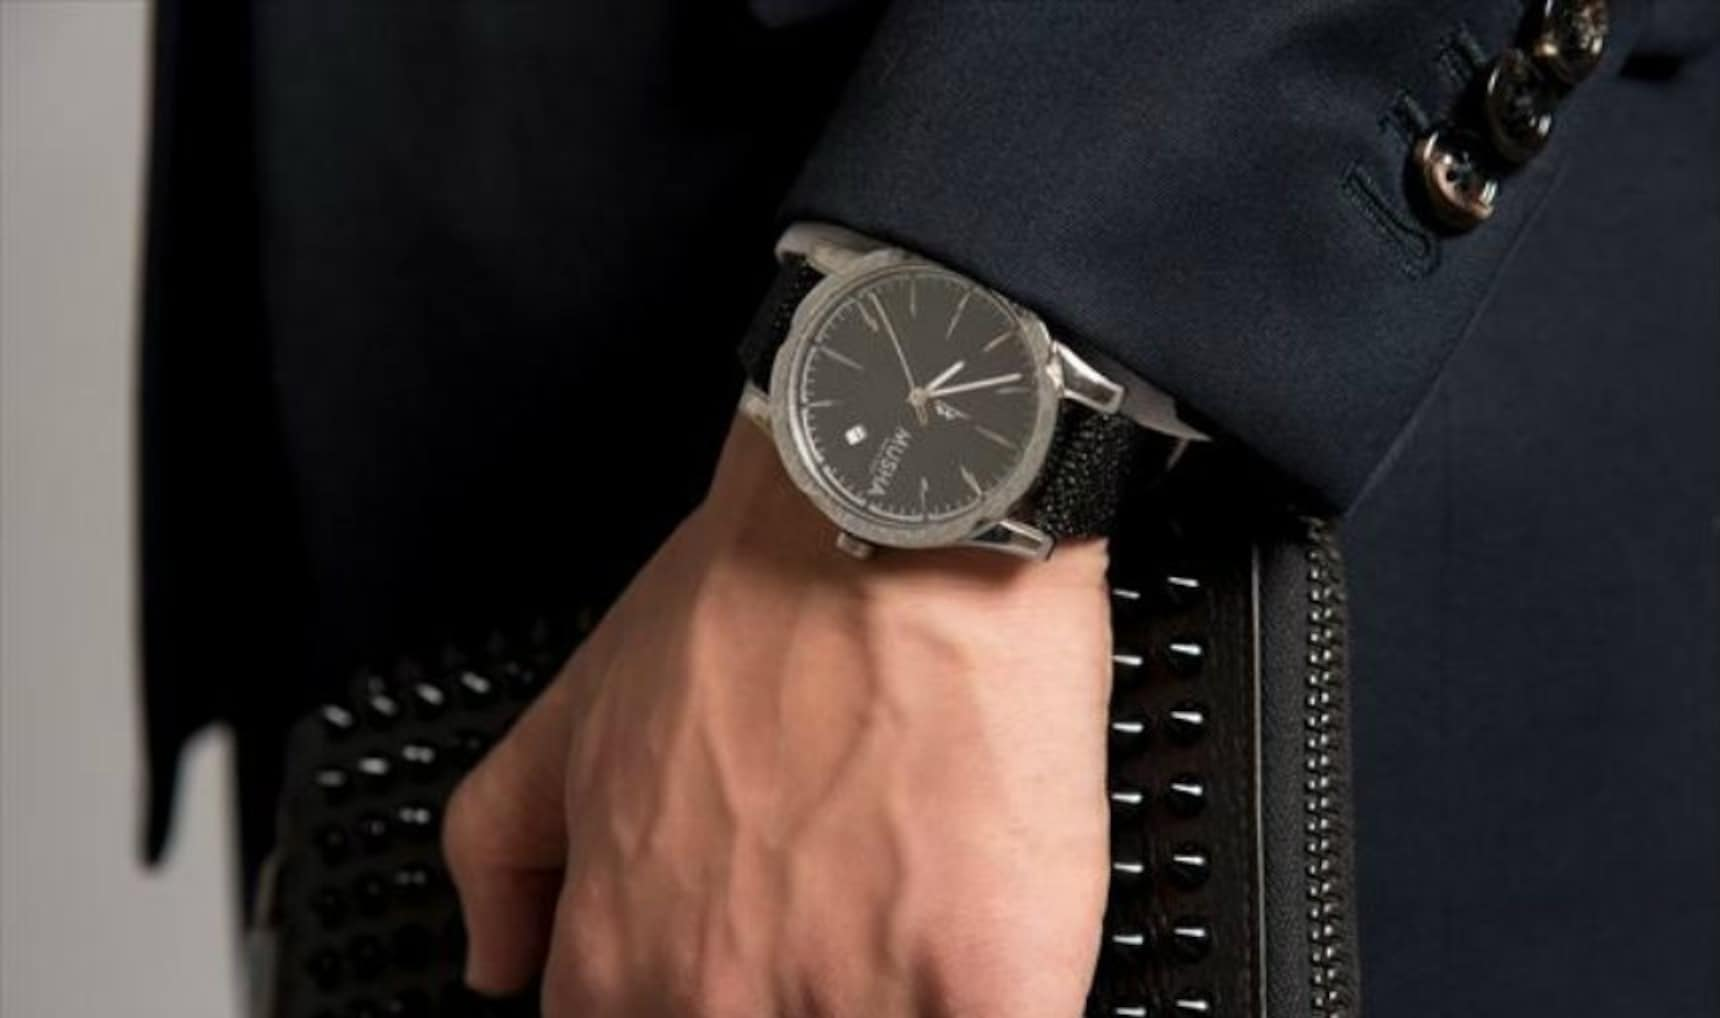 Sharpen Your Look With Damascus Steel Watches